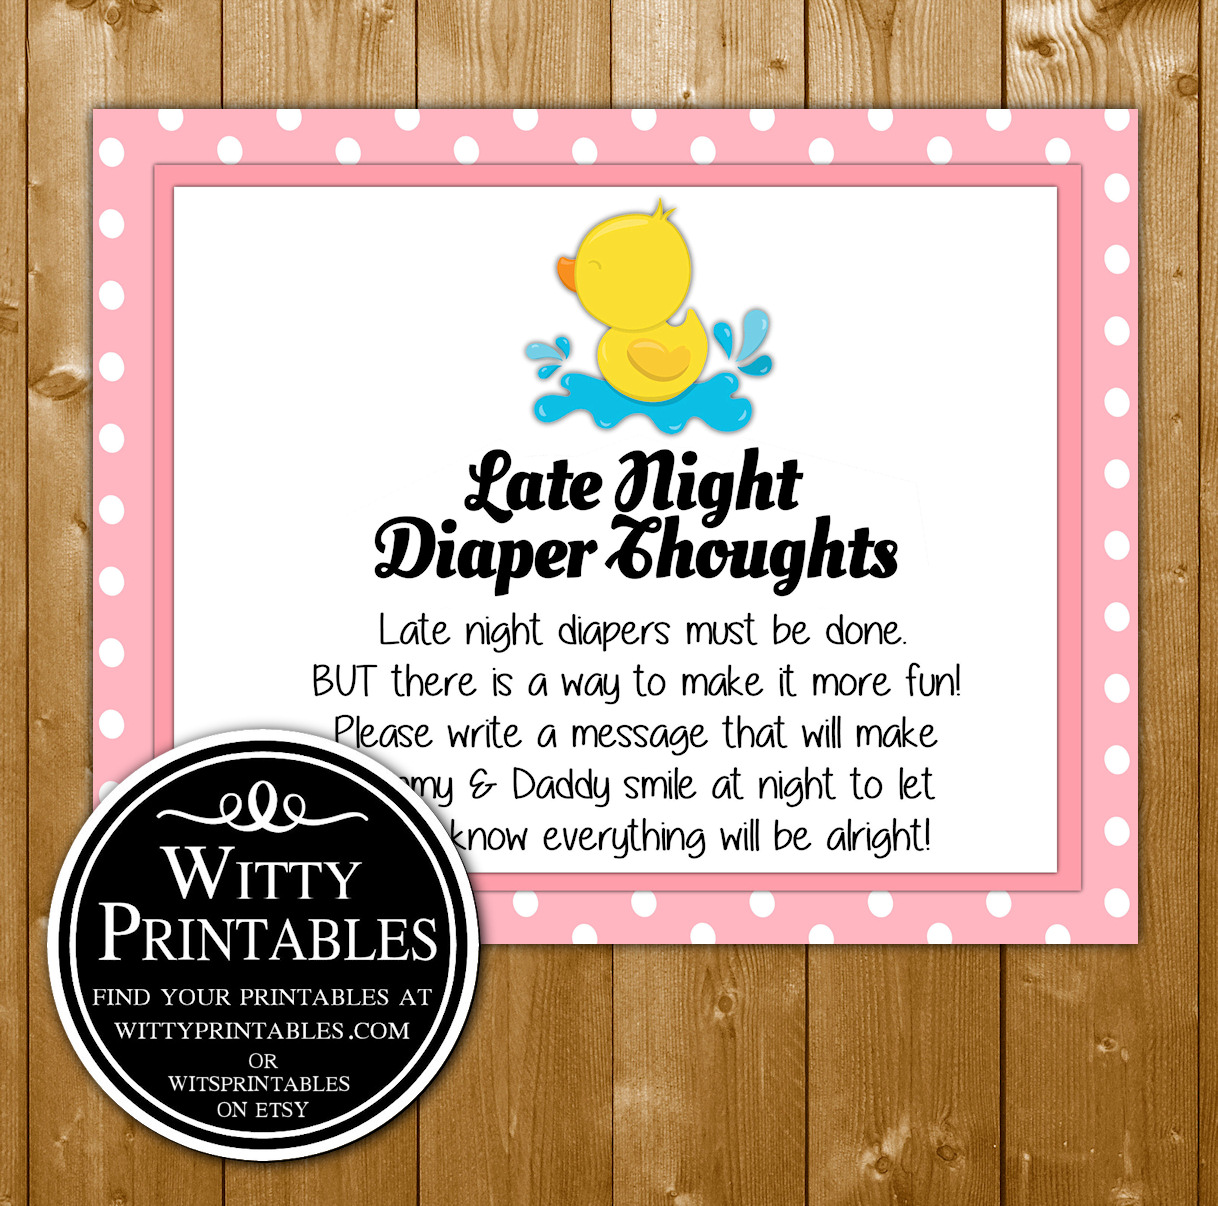 photograph relating to Late Night Diapers Printable referred to as Late Evening Diaper Brain Child Shower Video game Printable Crimson Duck Female Concept